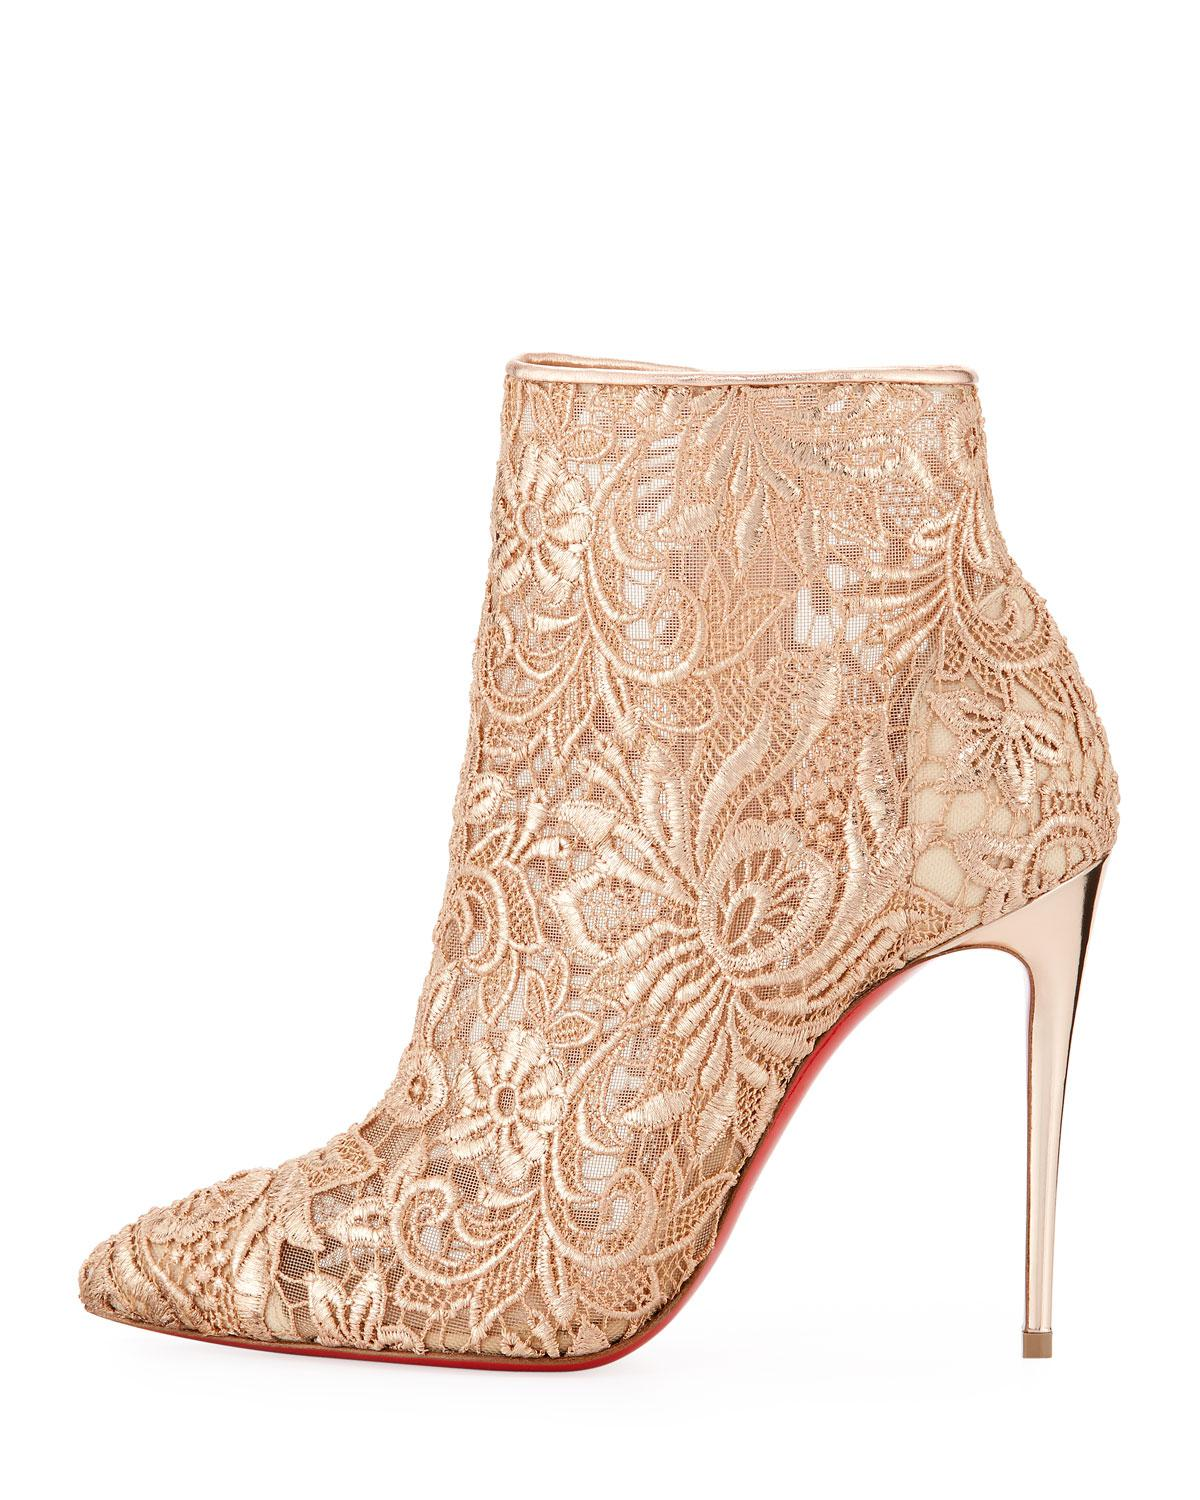 0733803600a Lyst - Christian Louboutin Gipsy Floral-lace Red Sole Bootie in Natural